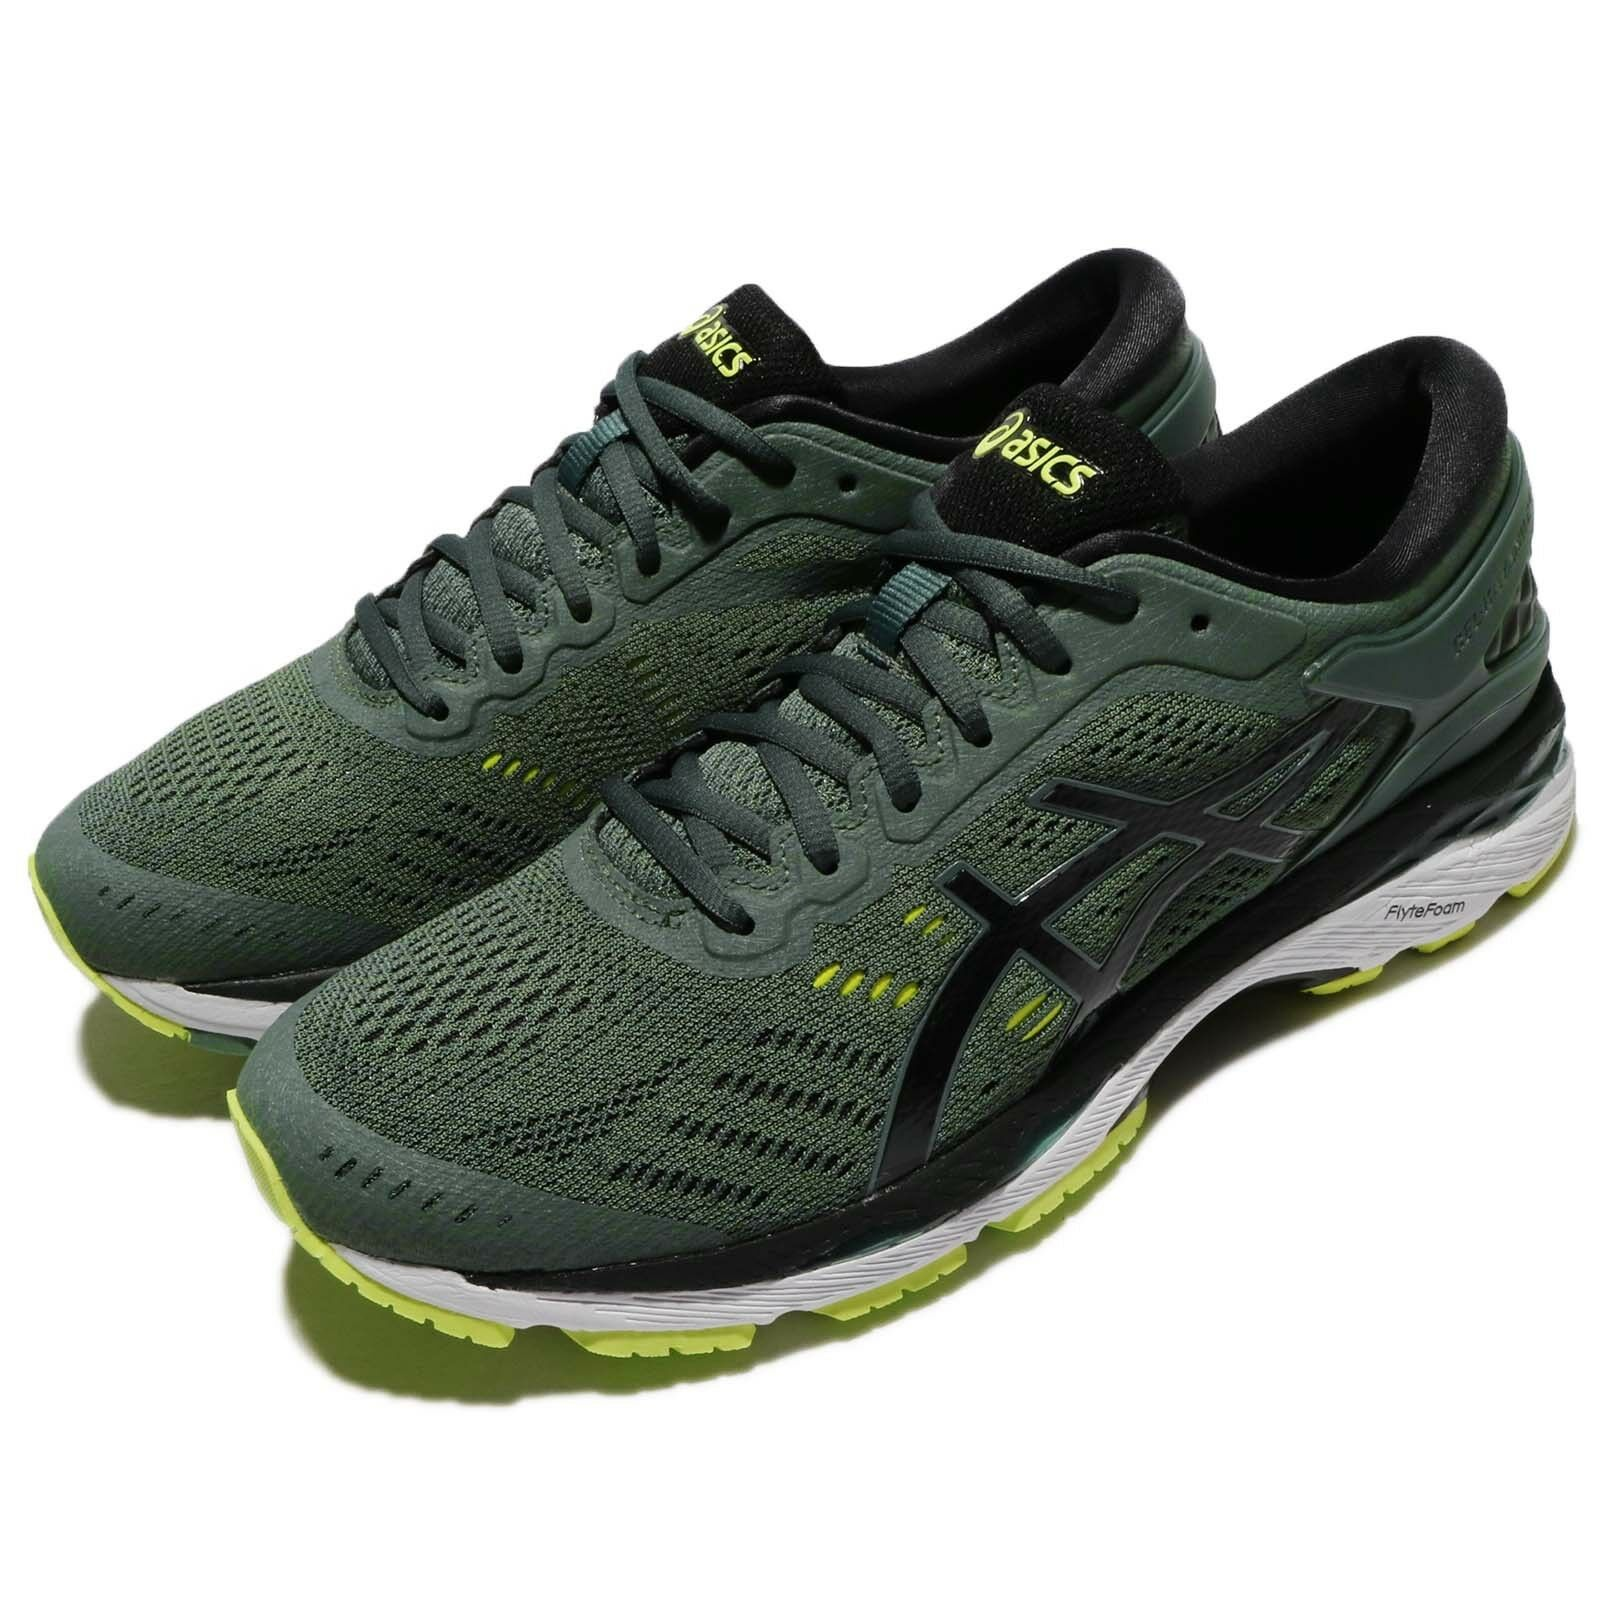 Asics Gel-Kayano 24 Dark Forest Green Black Men Running Shoes Trainer T749N-8290